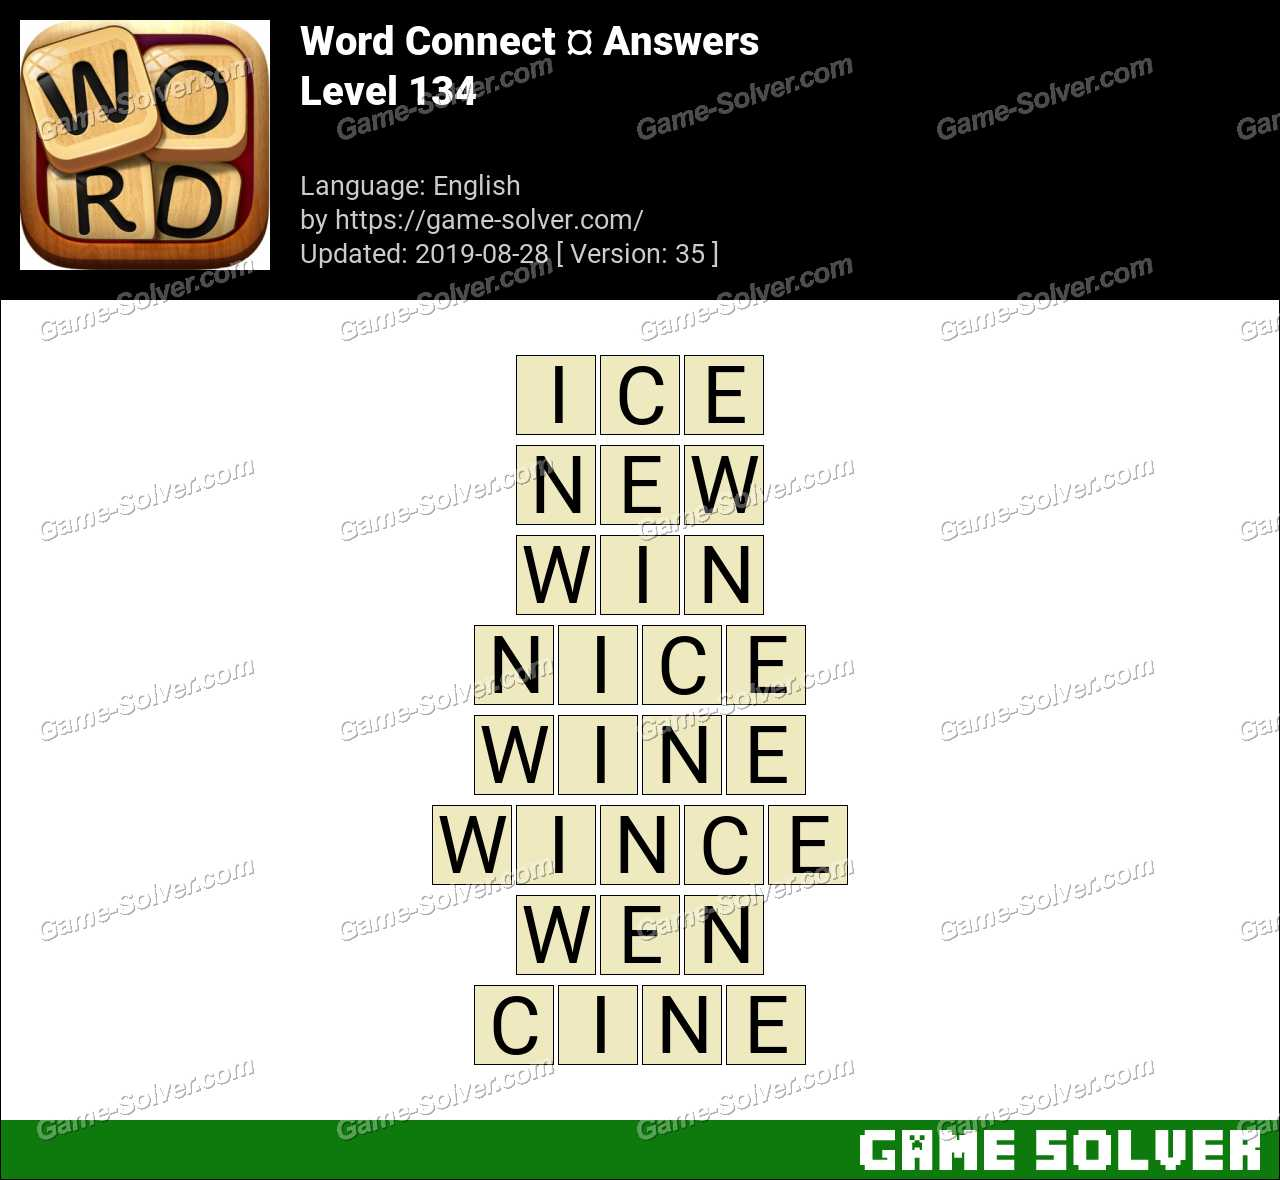 Word Connect Level 134 Answers